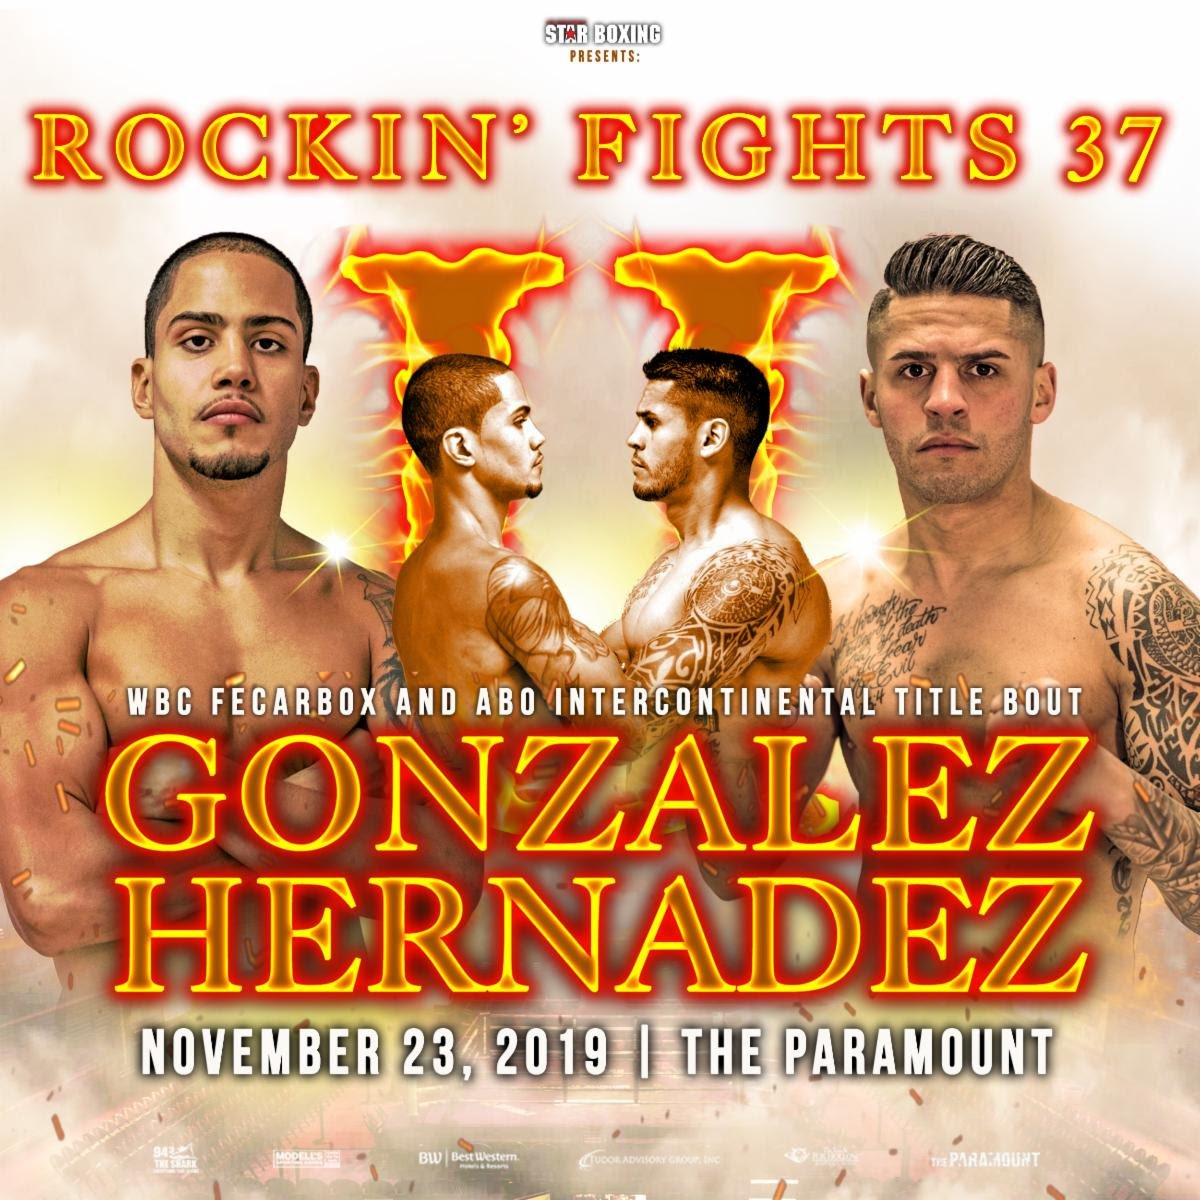 "Danny Gonzalez, Johnny Hernandez - When The Paramount marquee lights up with Star Boxing's ""Rockin' Fights"" logo, boxing fans know they are in for a treat. However, come November 23, boxing fans are in for more than that when two hometown favorites in, DANNY ""EL GALLO"" GONZALEZ (Woodhaven, NY 18-2-1 7KO's) and JOHNNY ""HITMAN"" HERNANDEZ (Huntington, NY 10-4 1KO) settle their bad blood in a rematch at the ""Rockin' Fights 37"" main event."